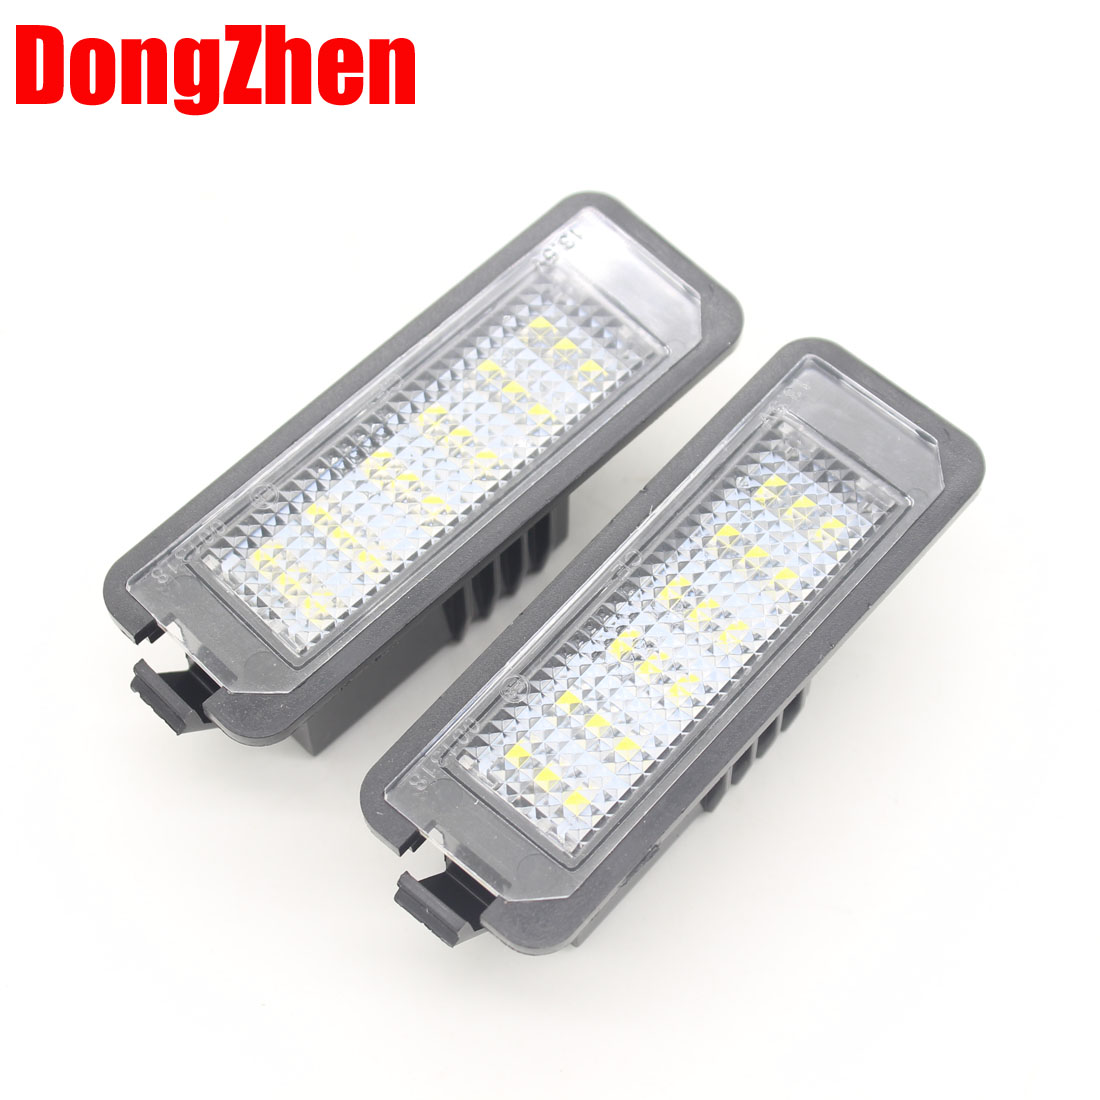 DongZhen auto accessories car styling Fit for Golf4 Golf5 Passat Polo LED License plate lights Free shipping  2pcs 2017 new inflatable car bed for back seat auto suitable for most of car accessories car styling free shipping